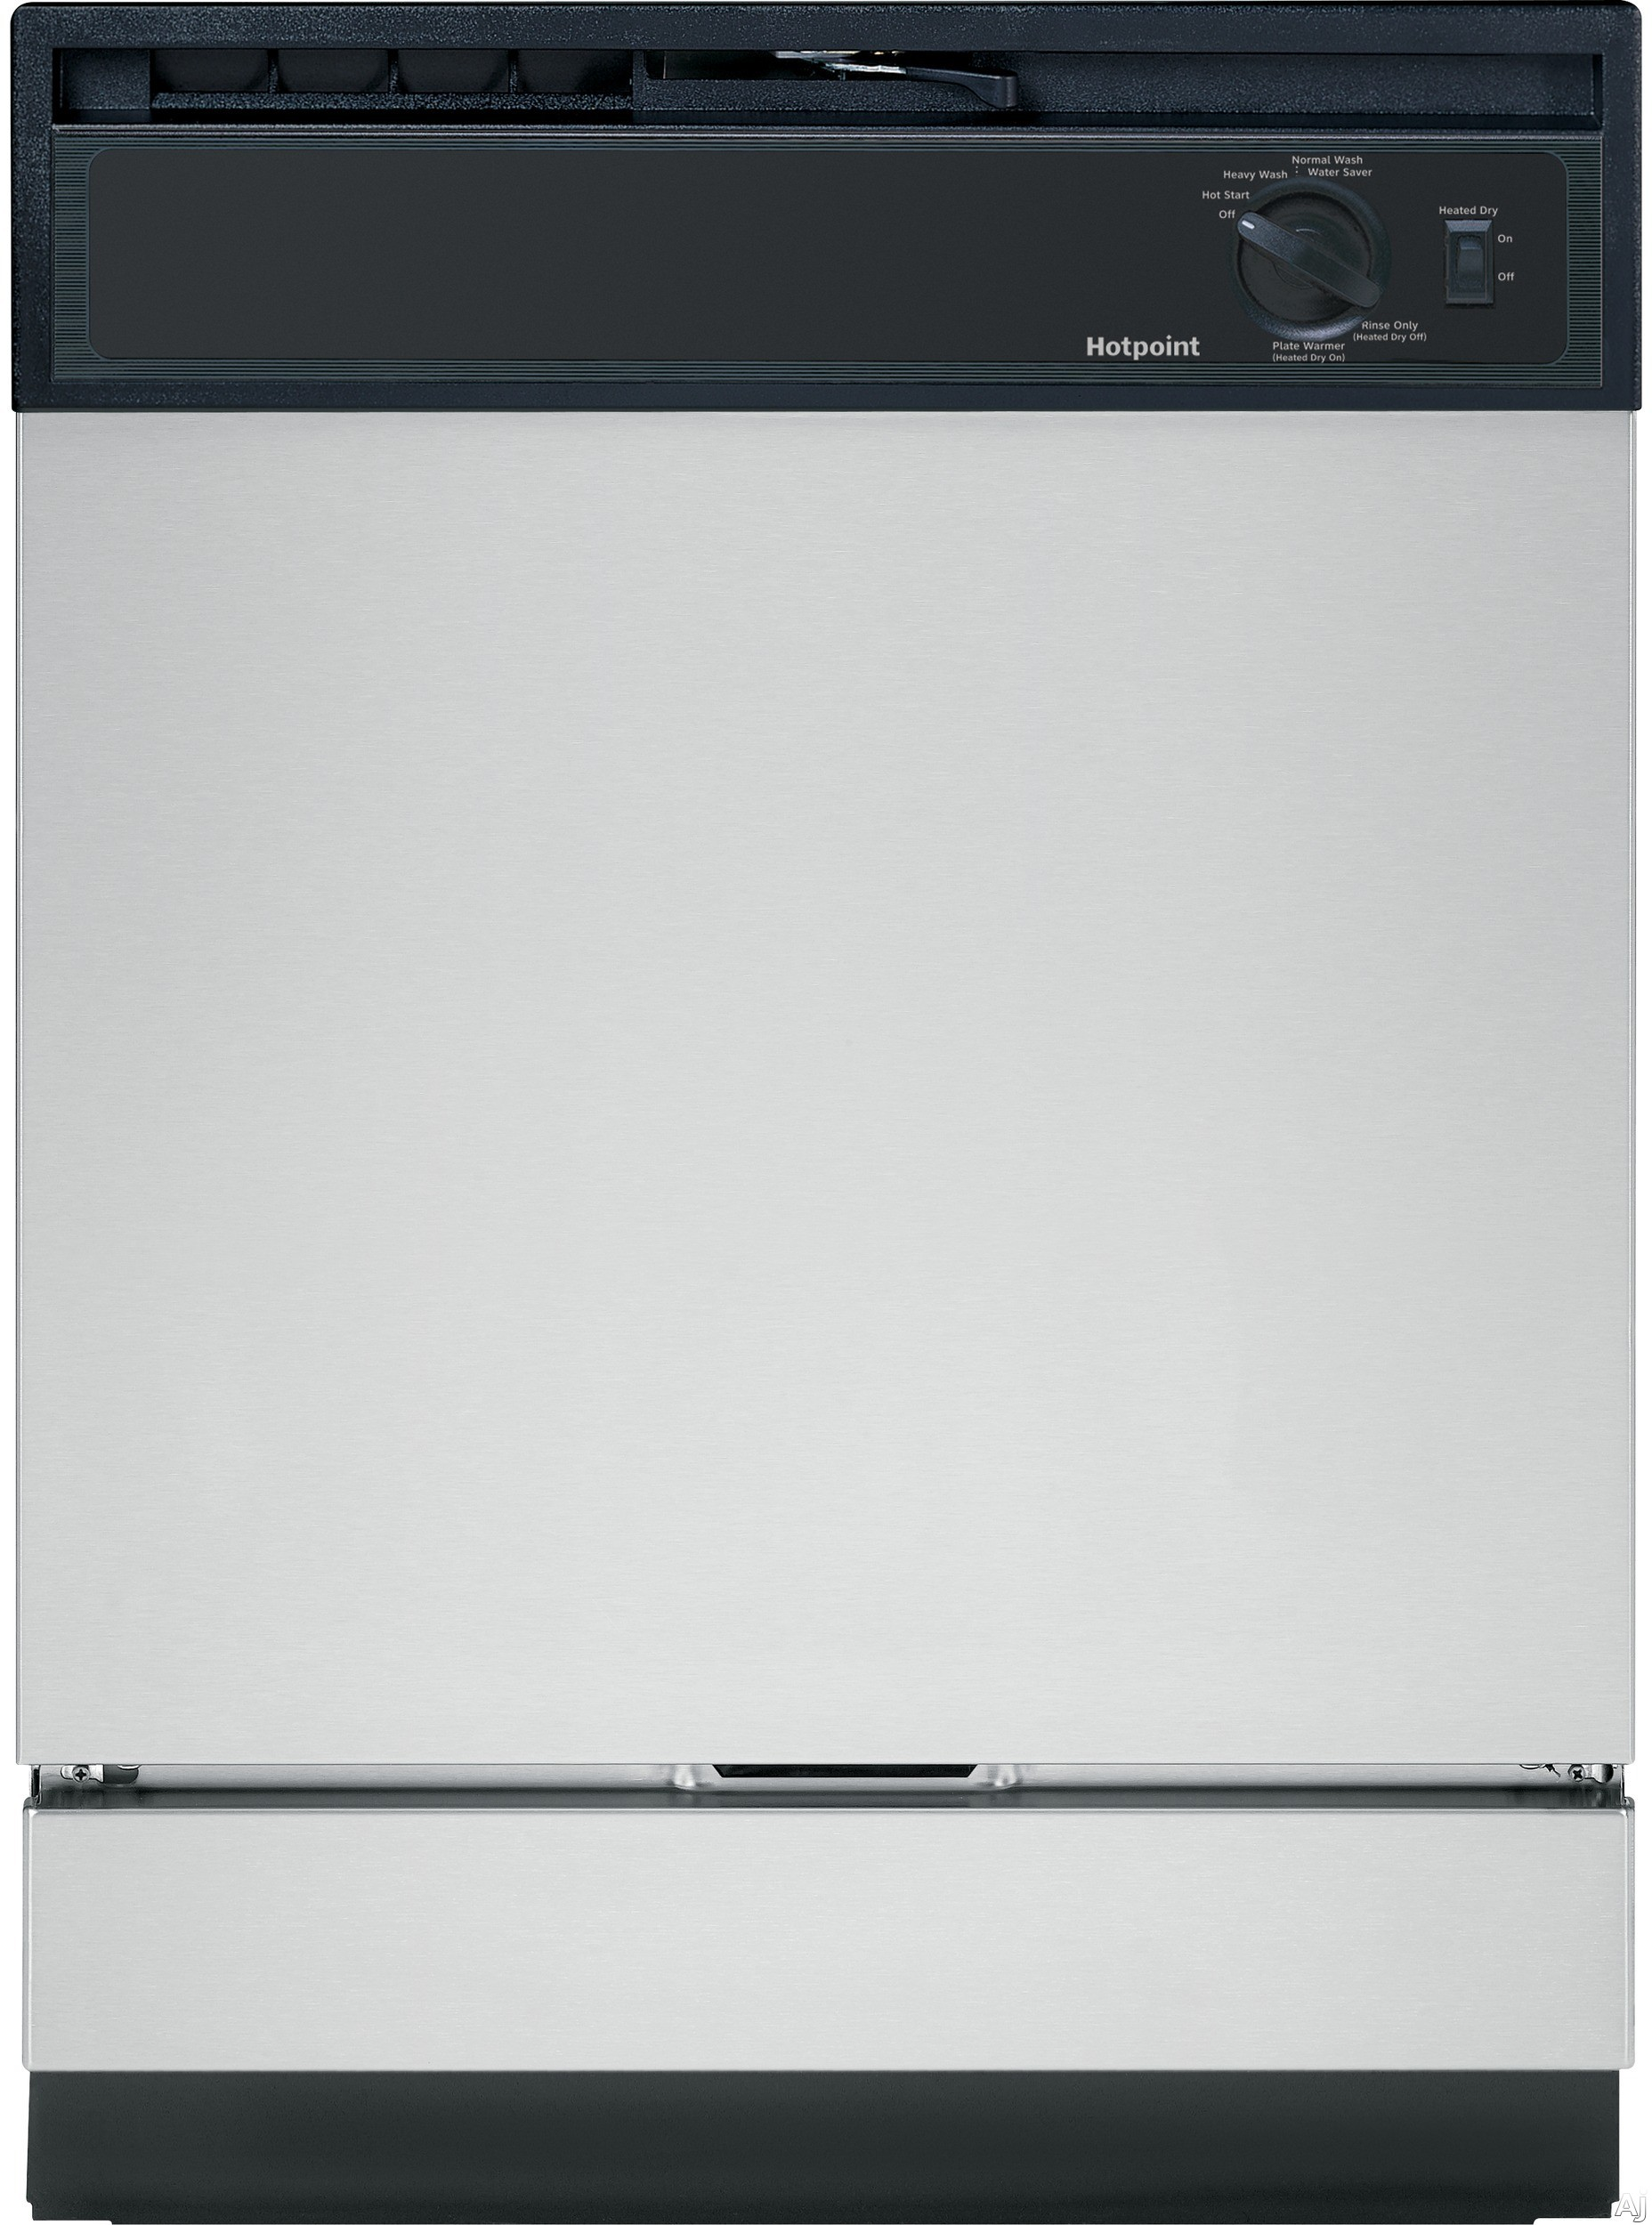 Countertop Dishwasher With Heated Dry : In Dishwasher with 5 Wash Cycles, Heated Start, Optional Heated Drying ...